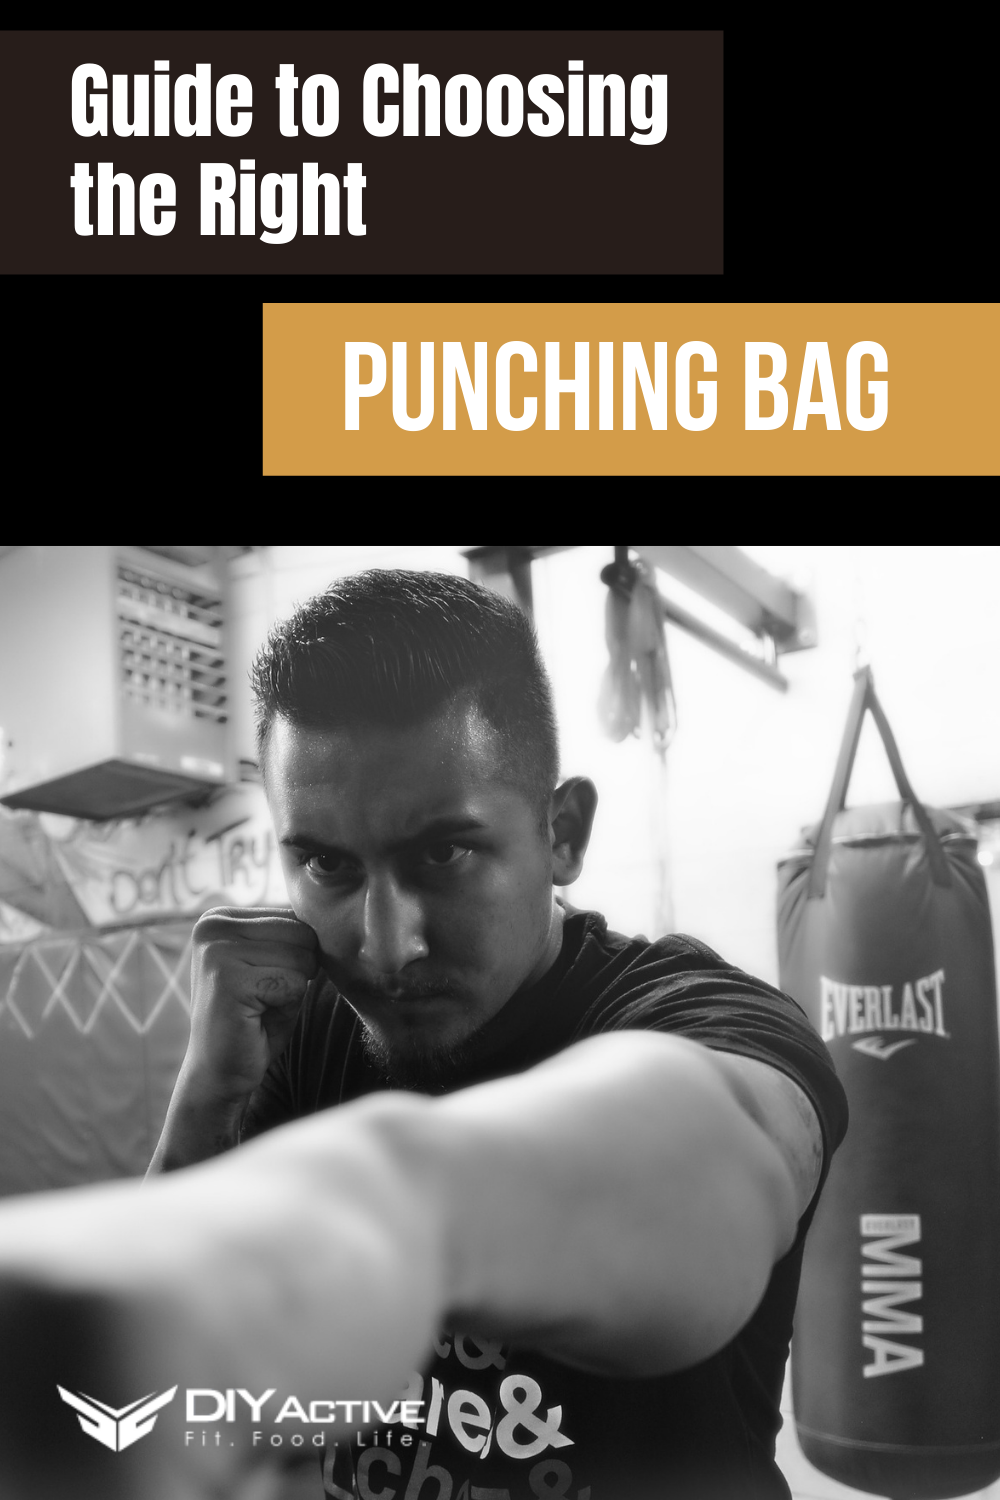 Guide to Choosing the Right Punching Bag for Your Workout